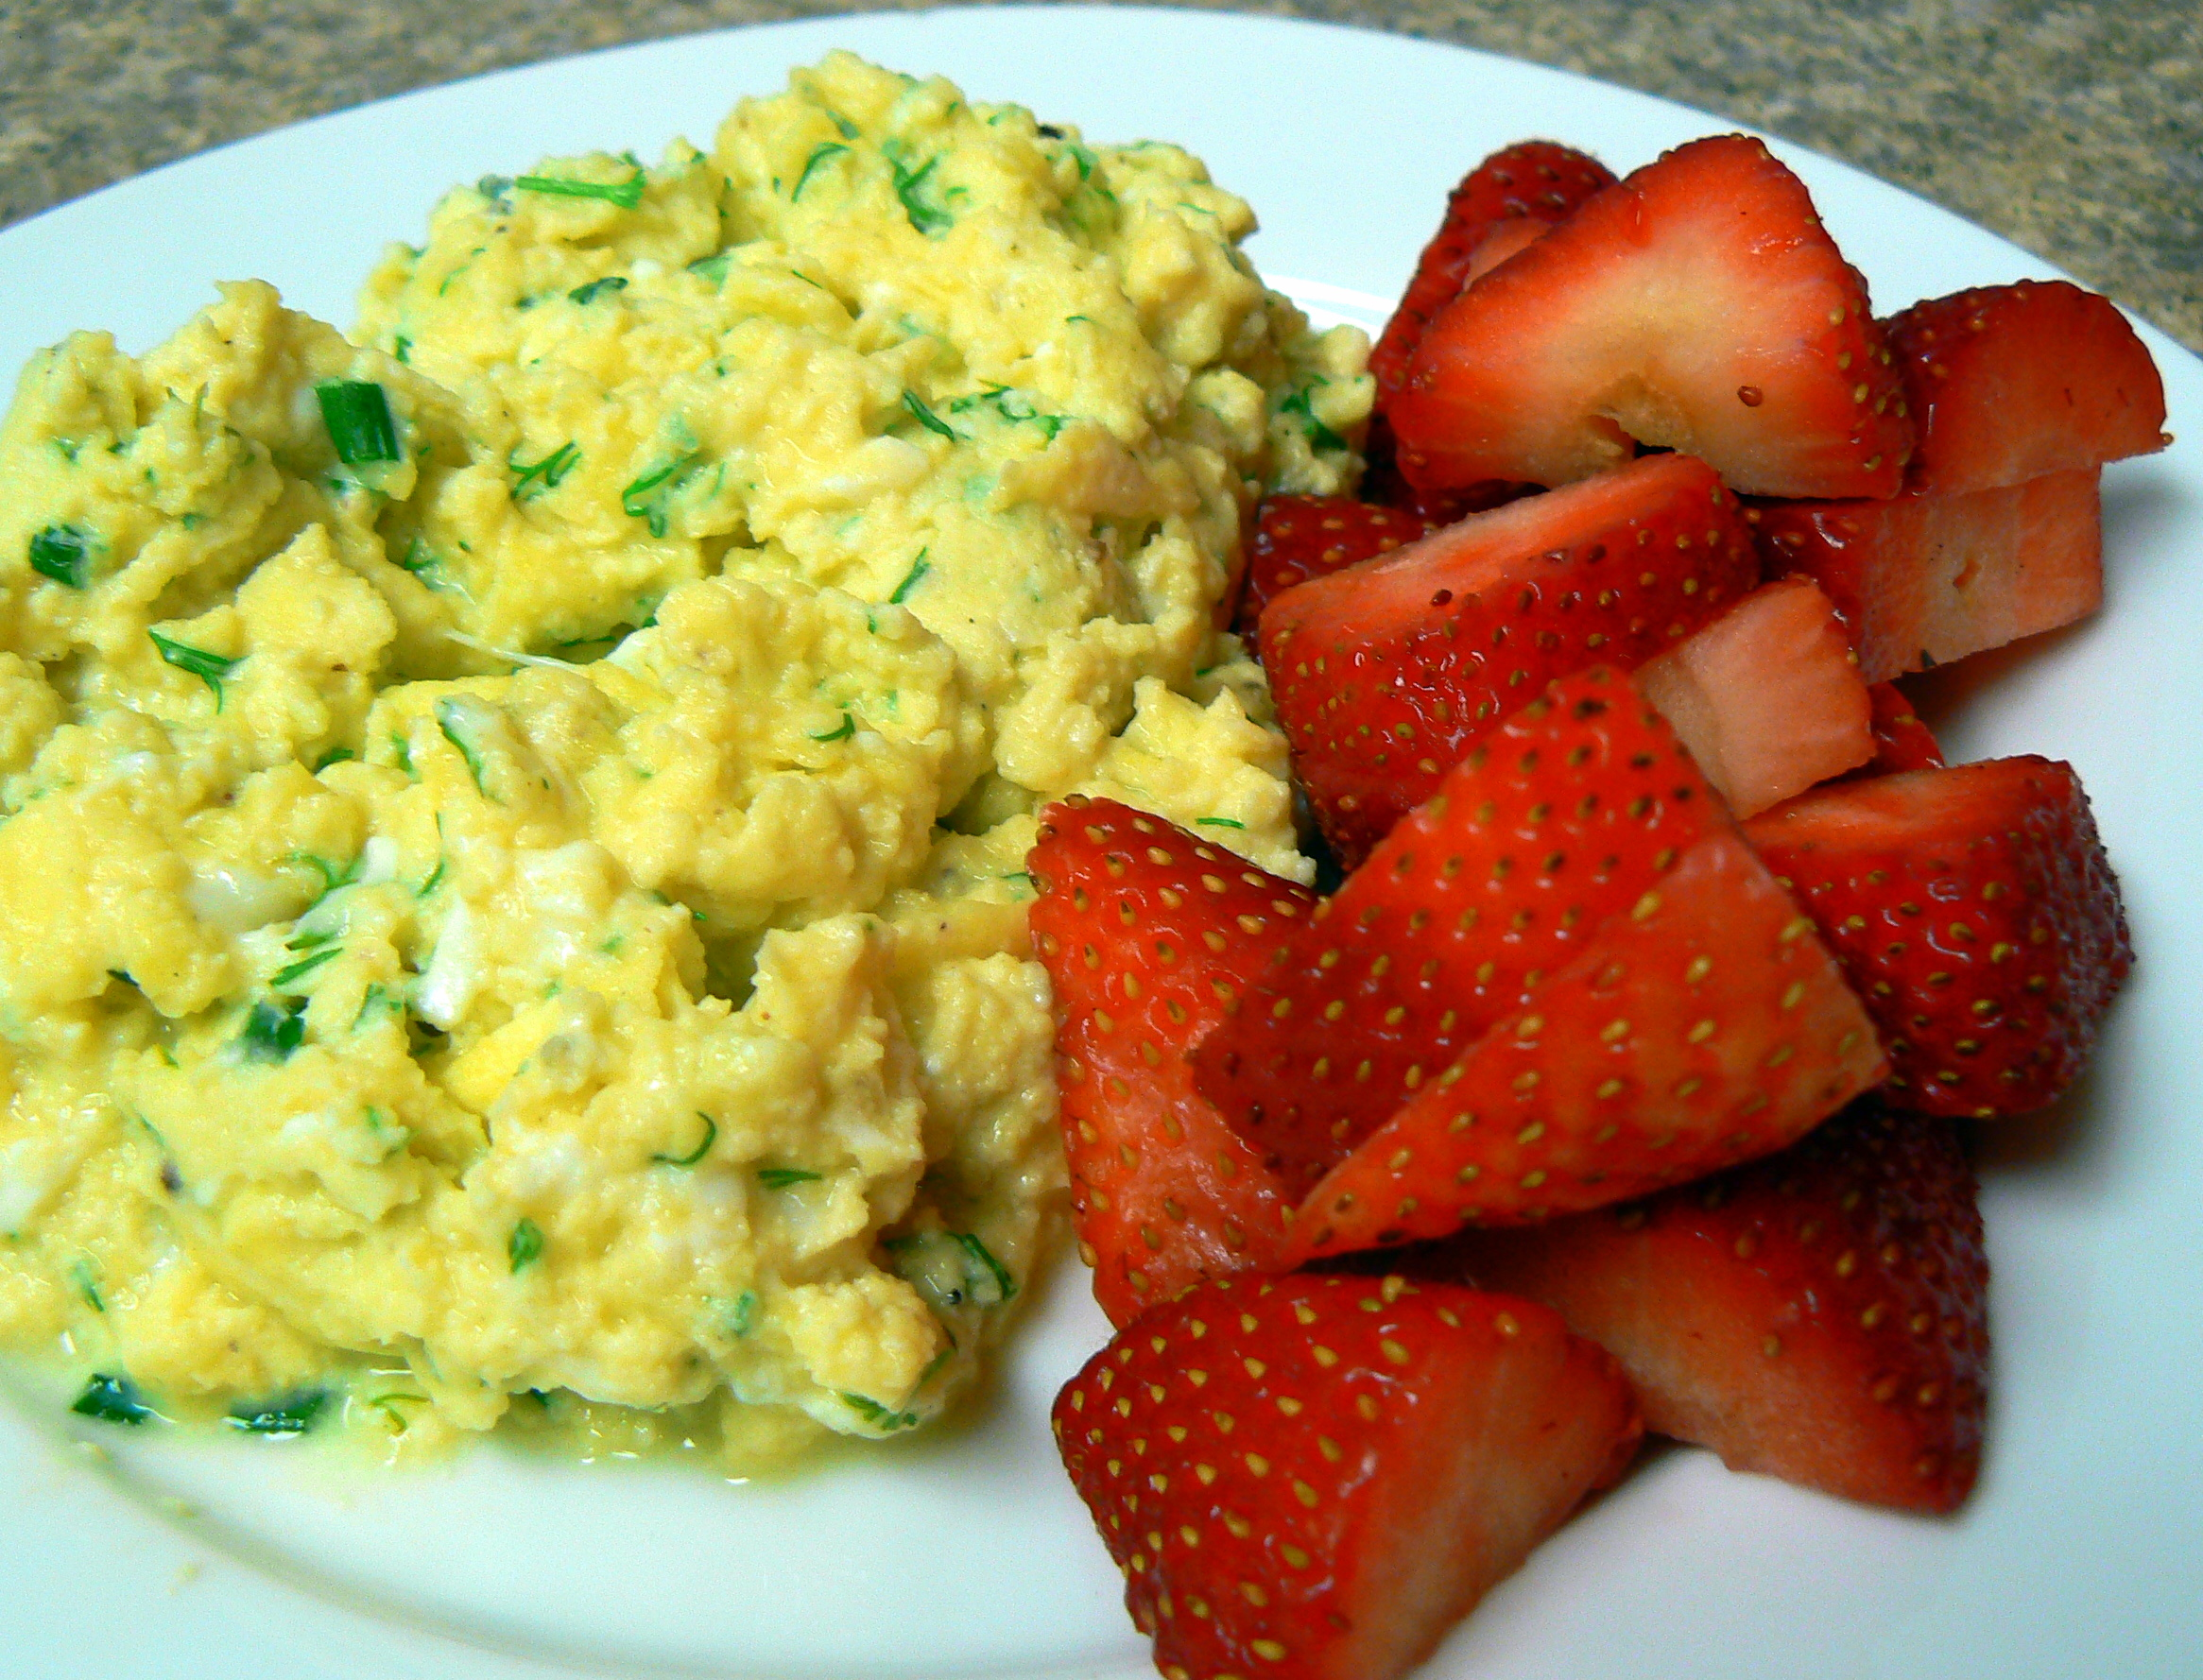 Sour Cream and Chive Scrambled Eggs – Crazy Jamie